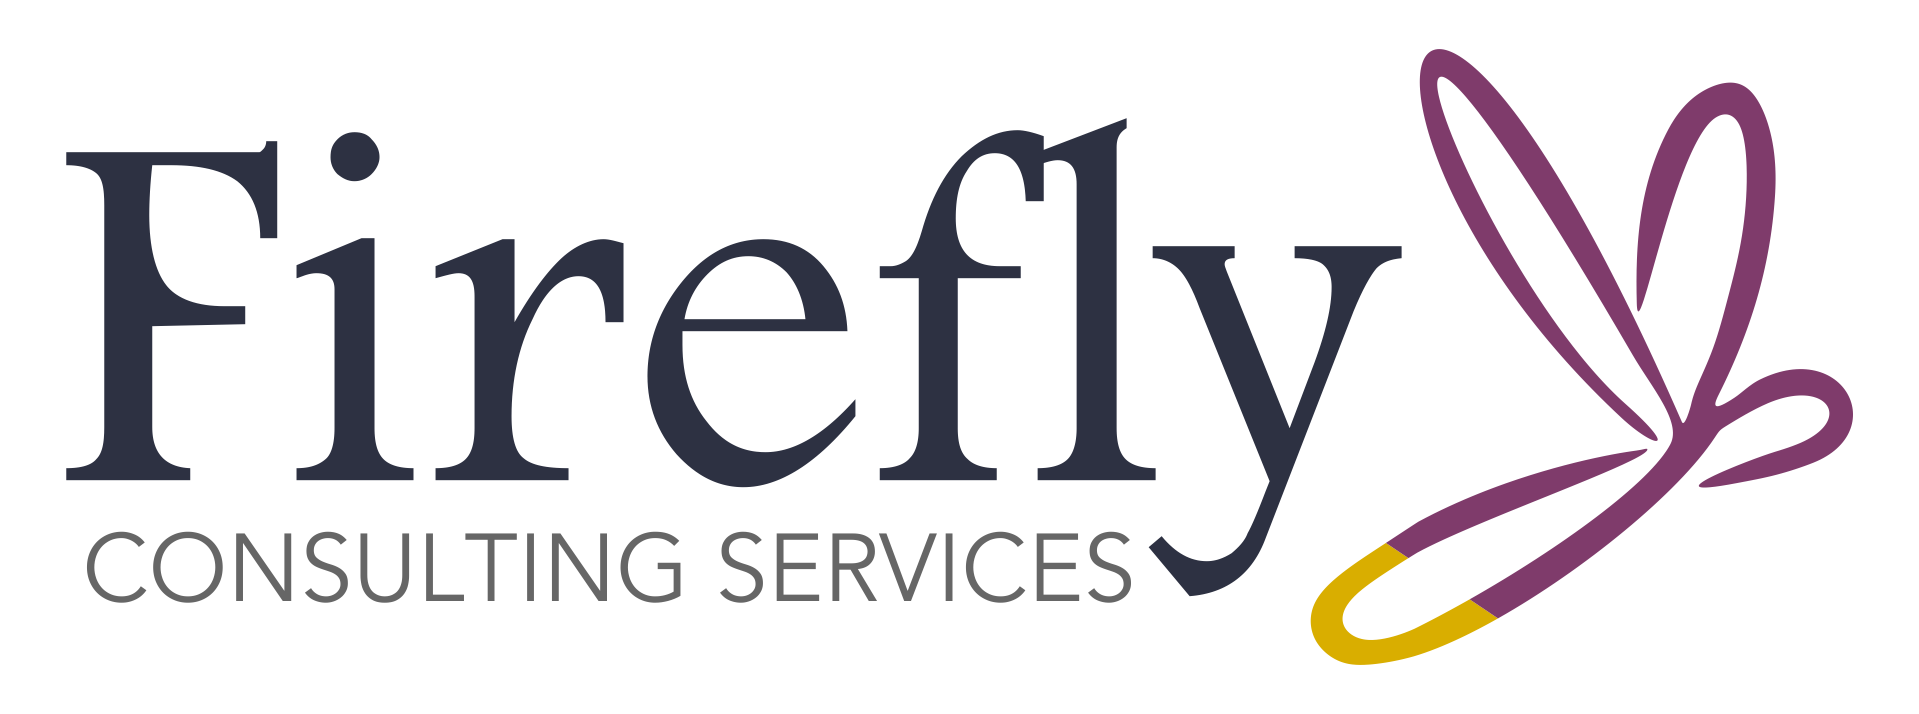 Firefly Consulting Services